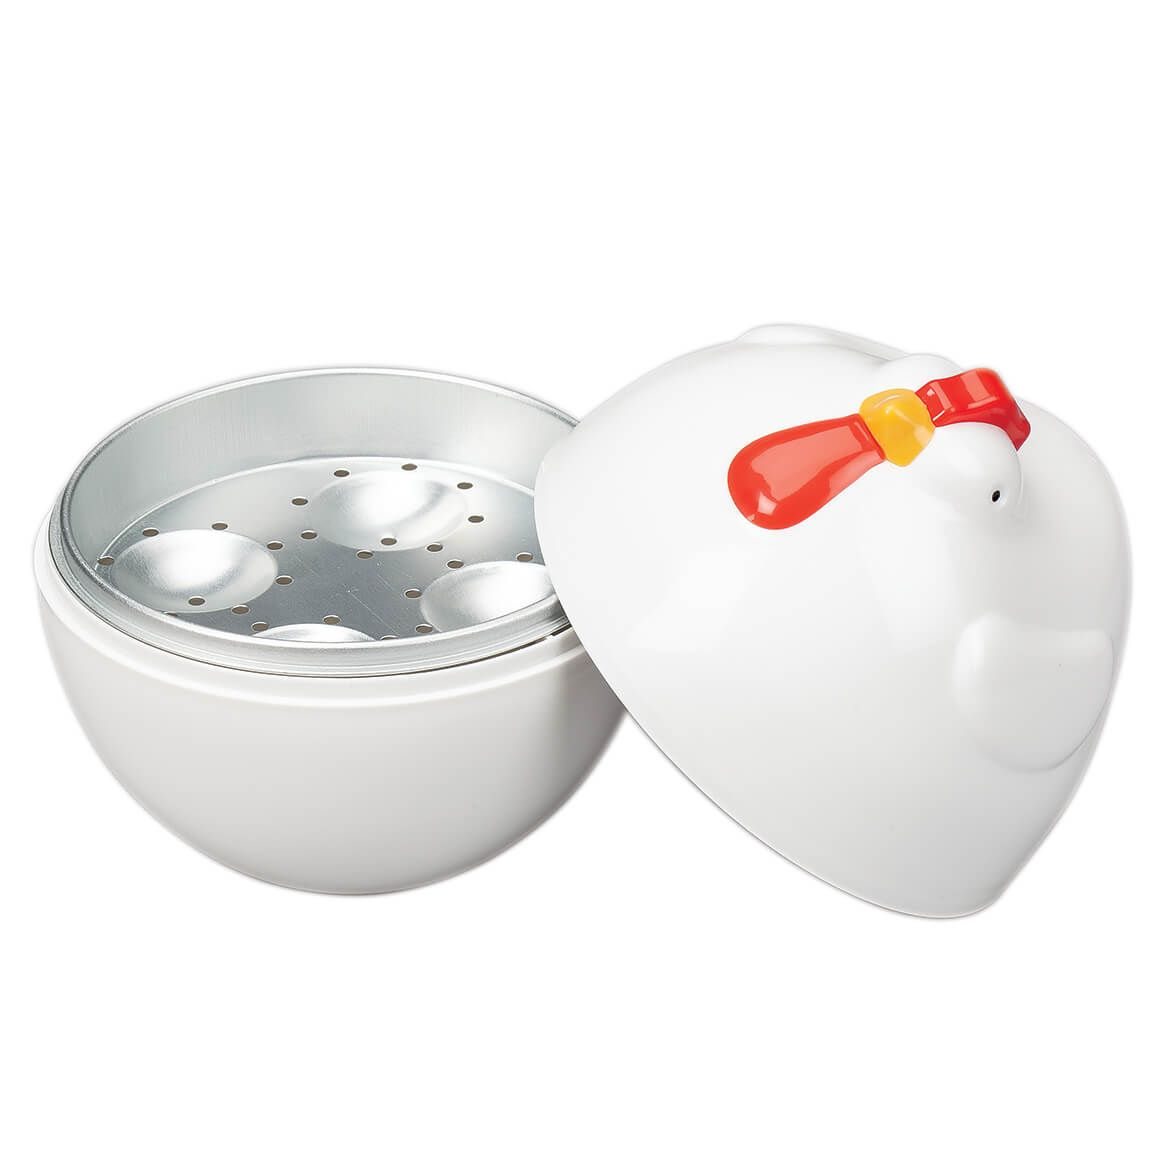 Rooster Microwave Egg Cooker by Chef's Pride-368992